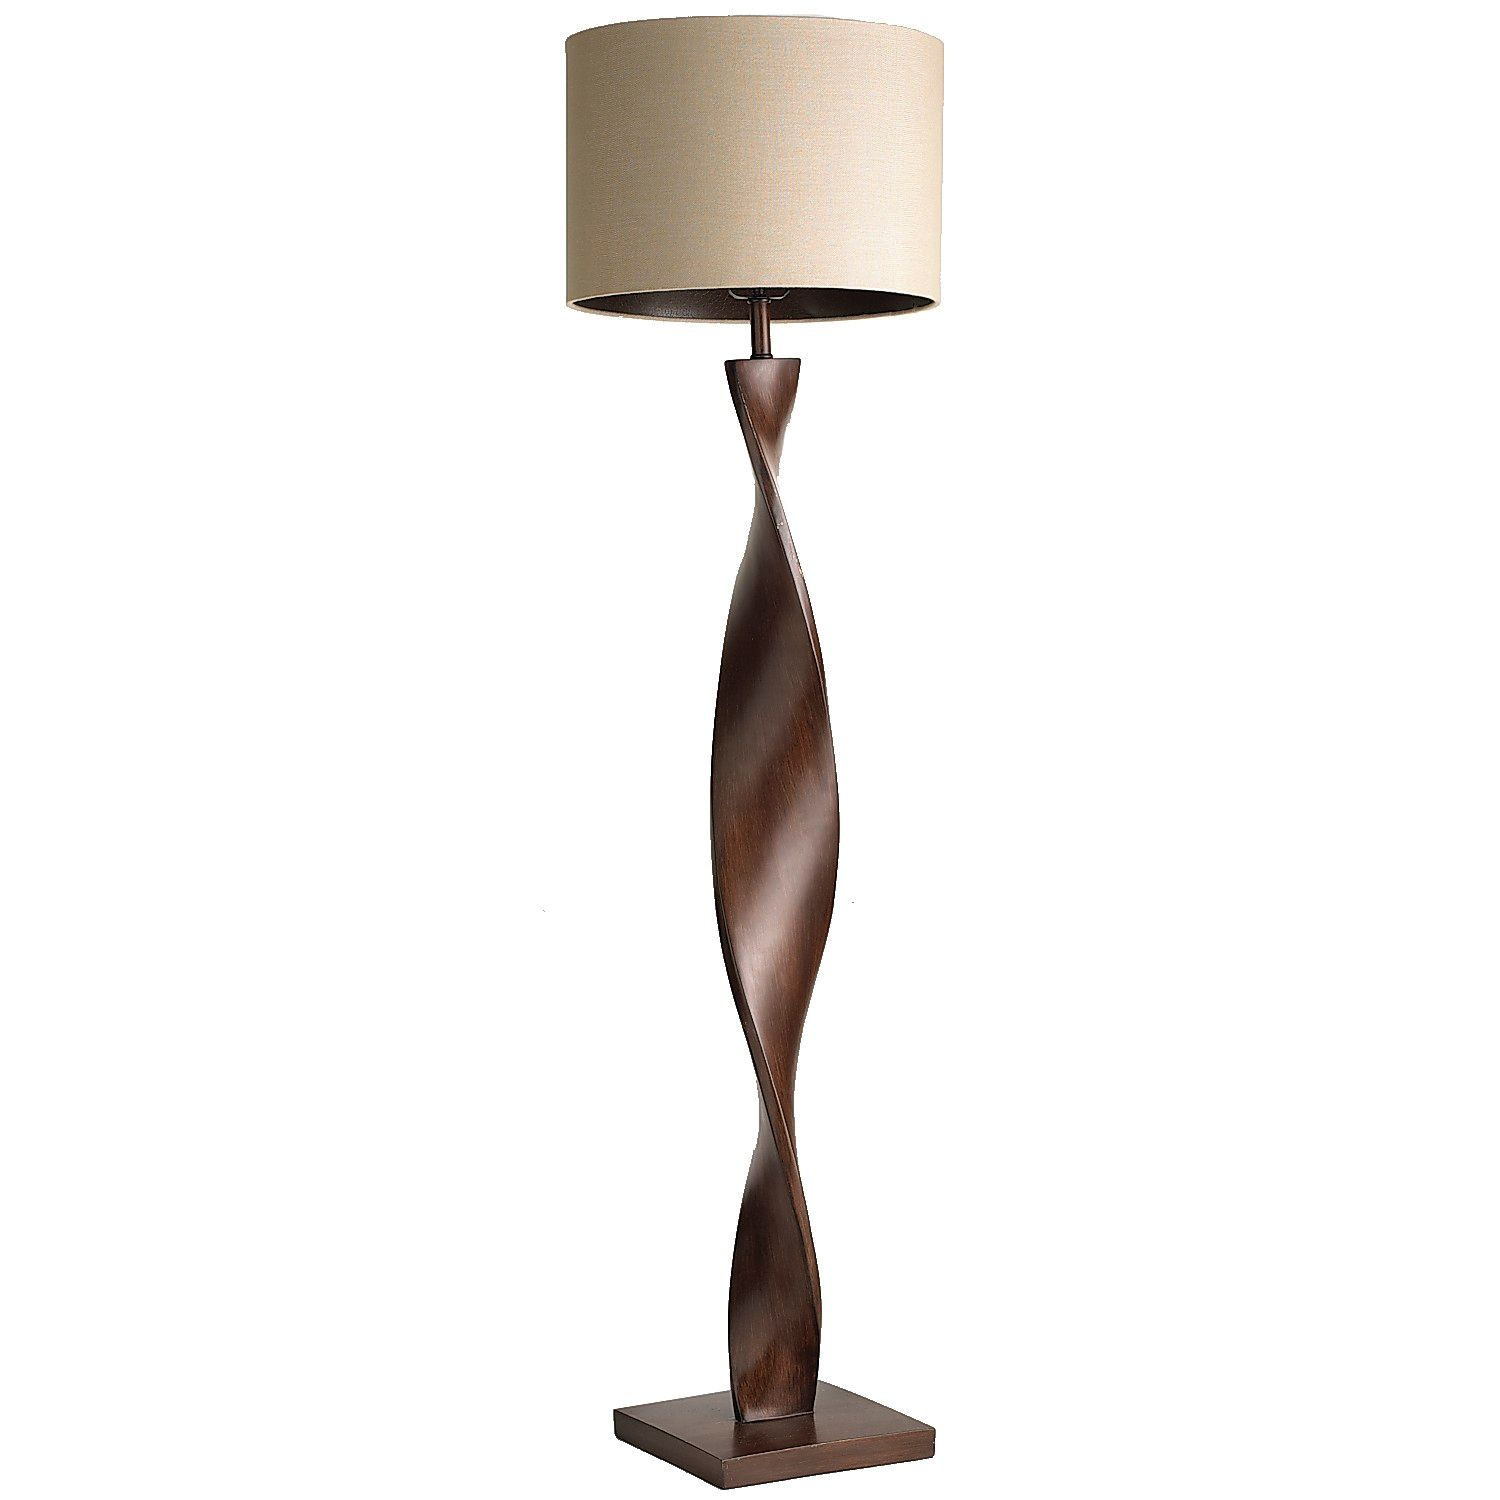 brown twist floor lamp pier imports one accent table lamps with hidden chairs outdoor wicker furniture cordless for living room garden umbrella ikea small square drop leaf folding